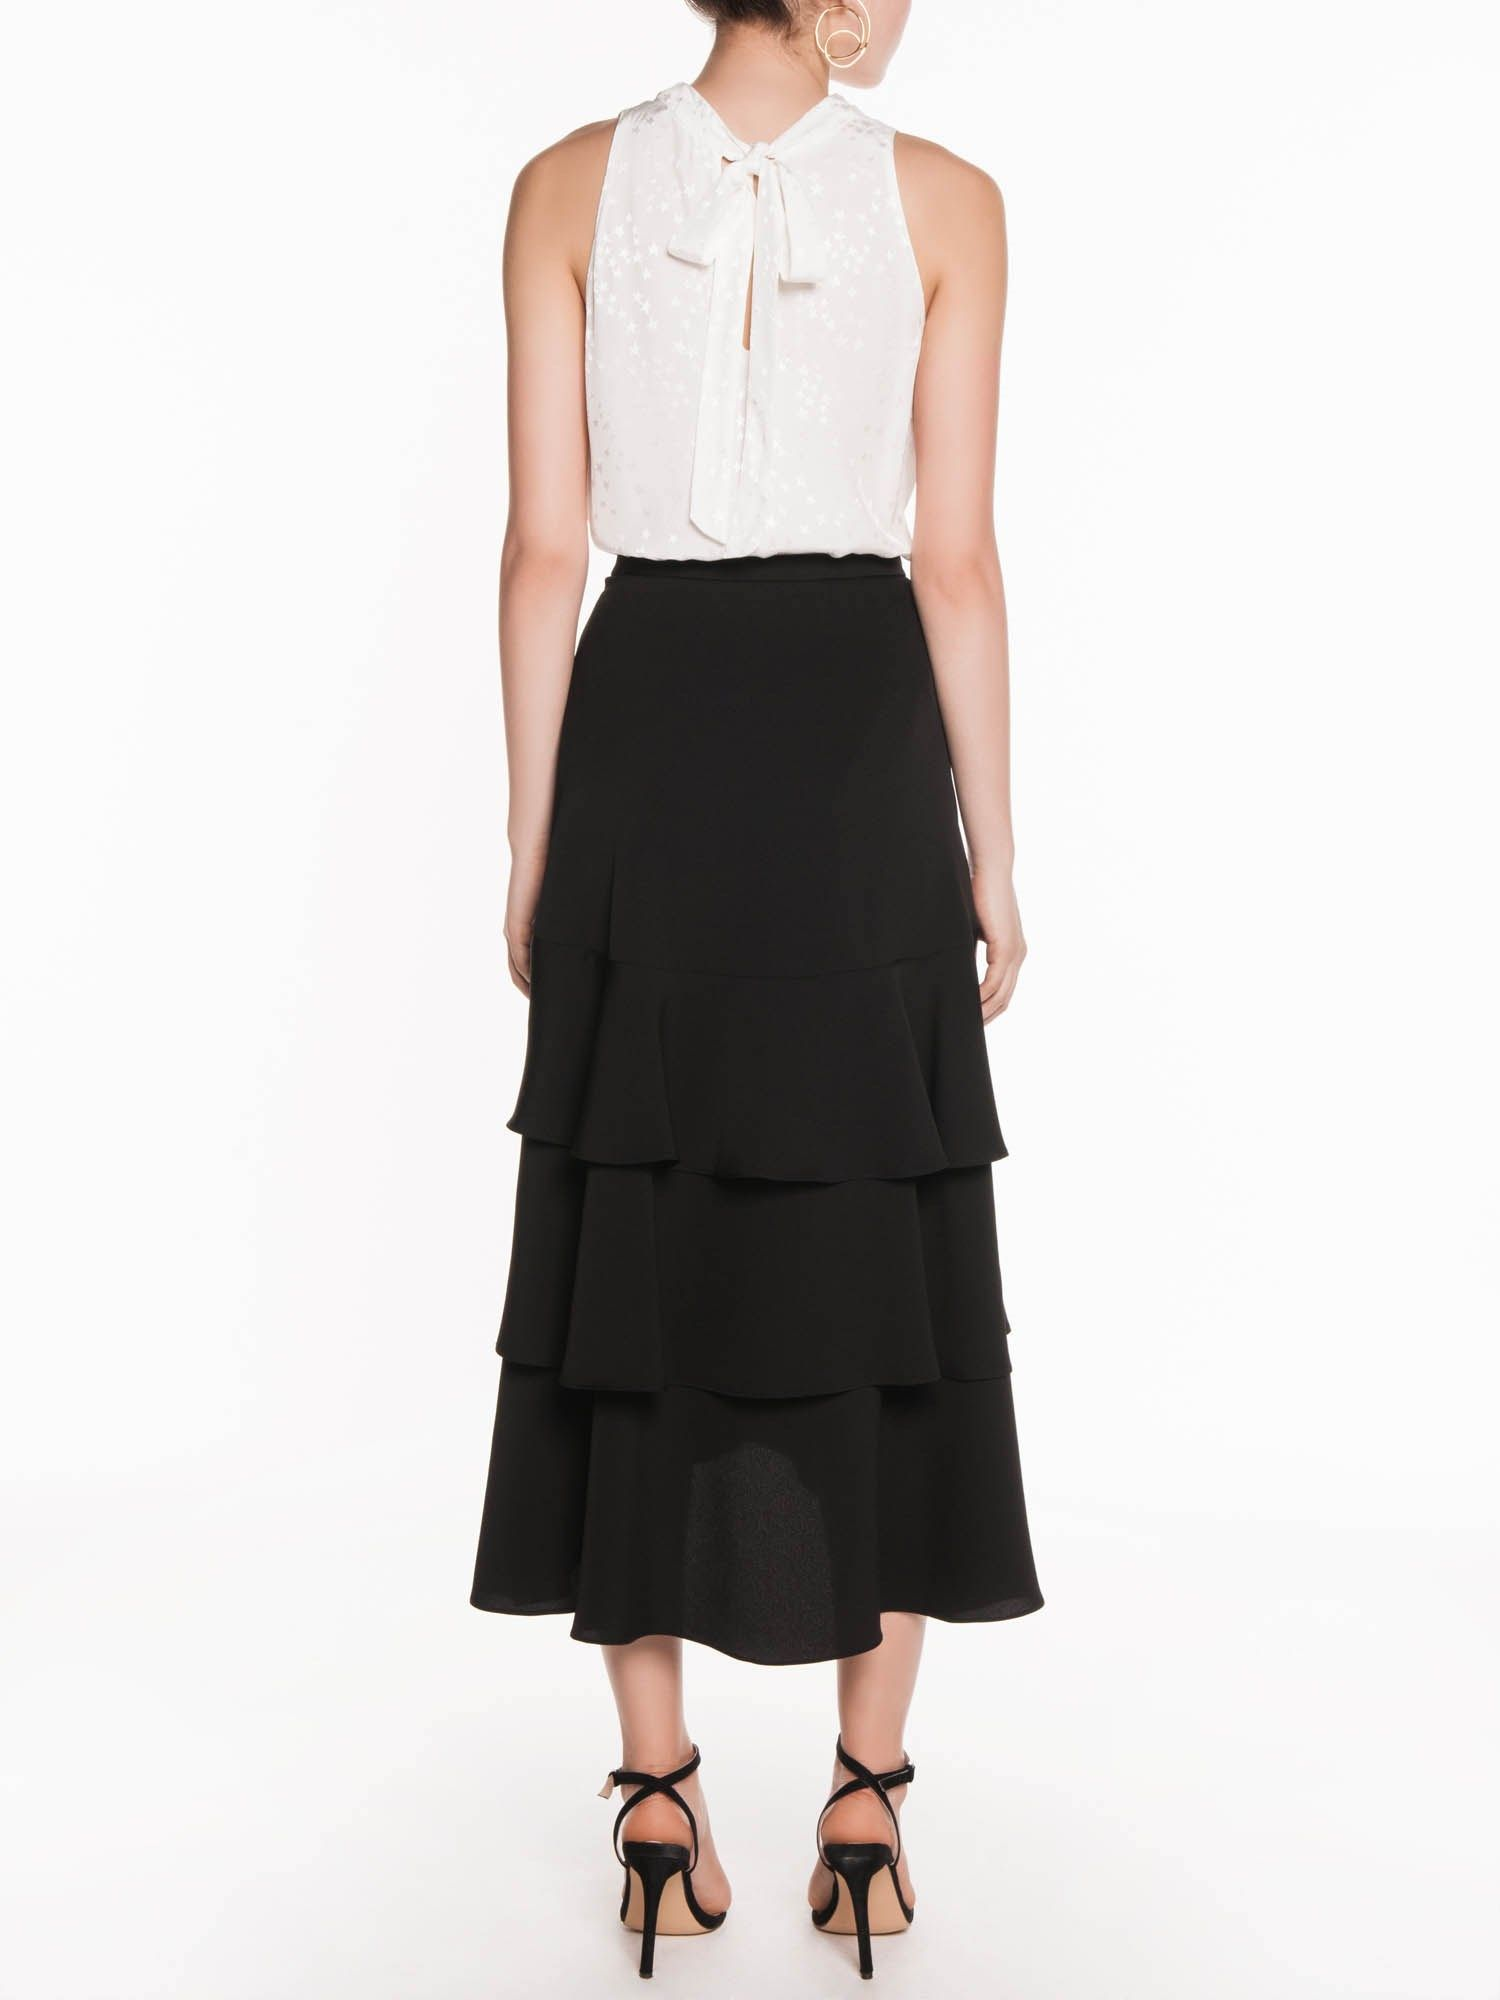 5a0f526efc3b Crepe Tiered Midi Skirt | Buy Skirts Online - Veronika Maine | Work ...